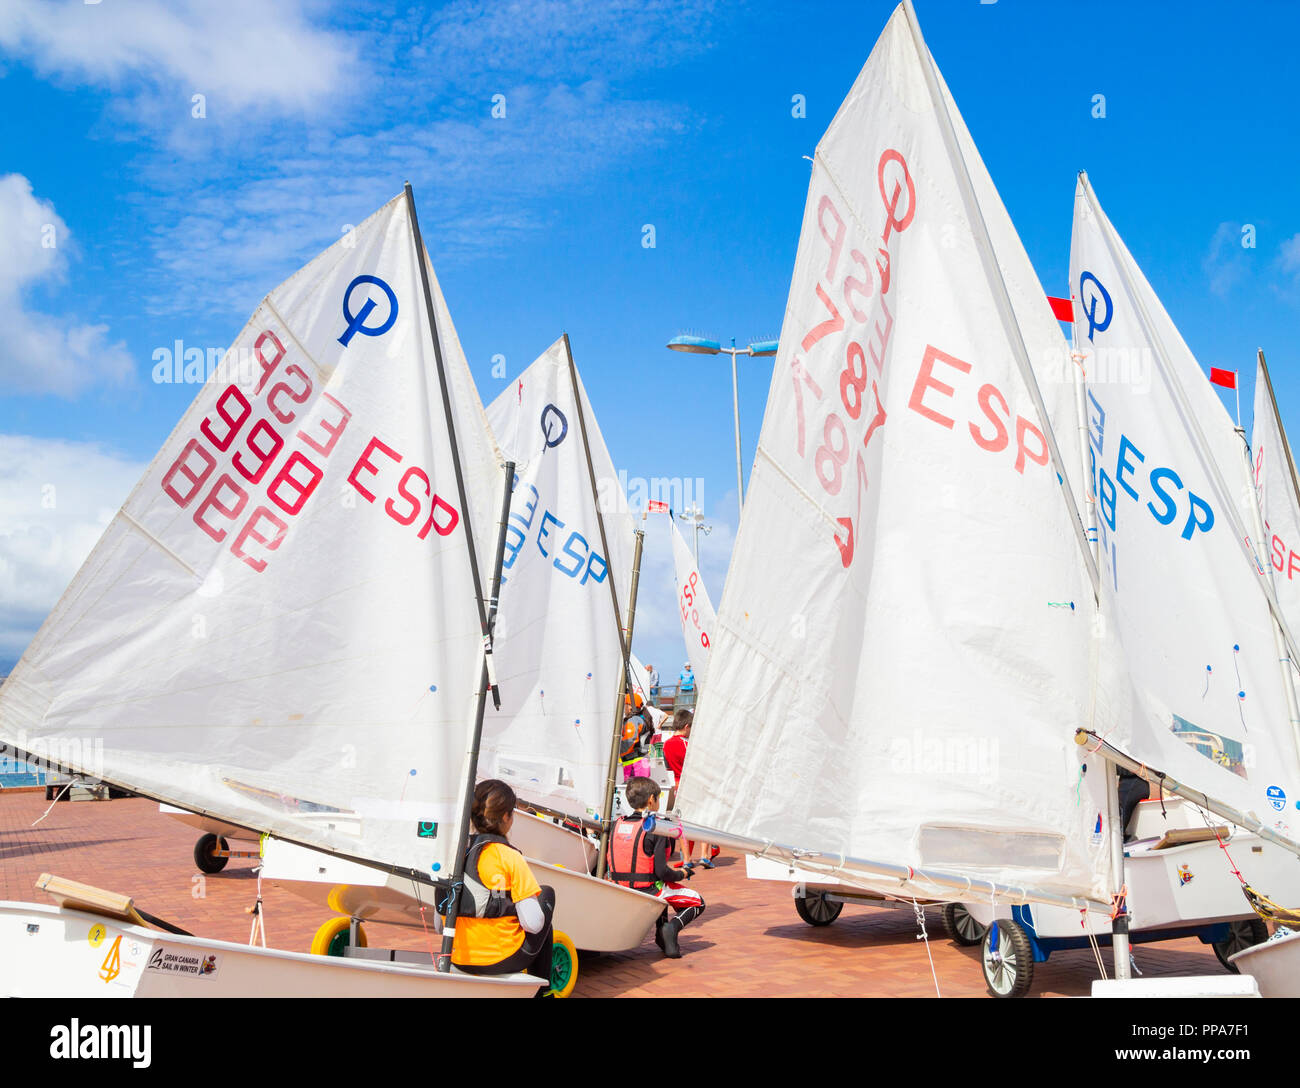 Optimist class dinghies at kids competition in Spain. - Stock Image